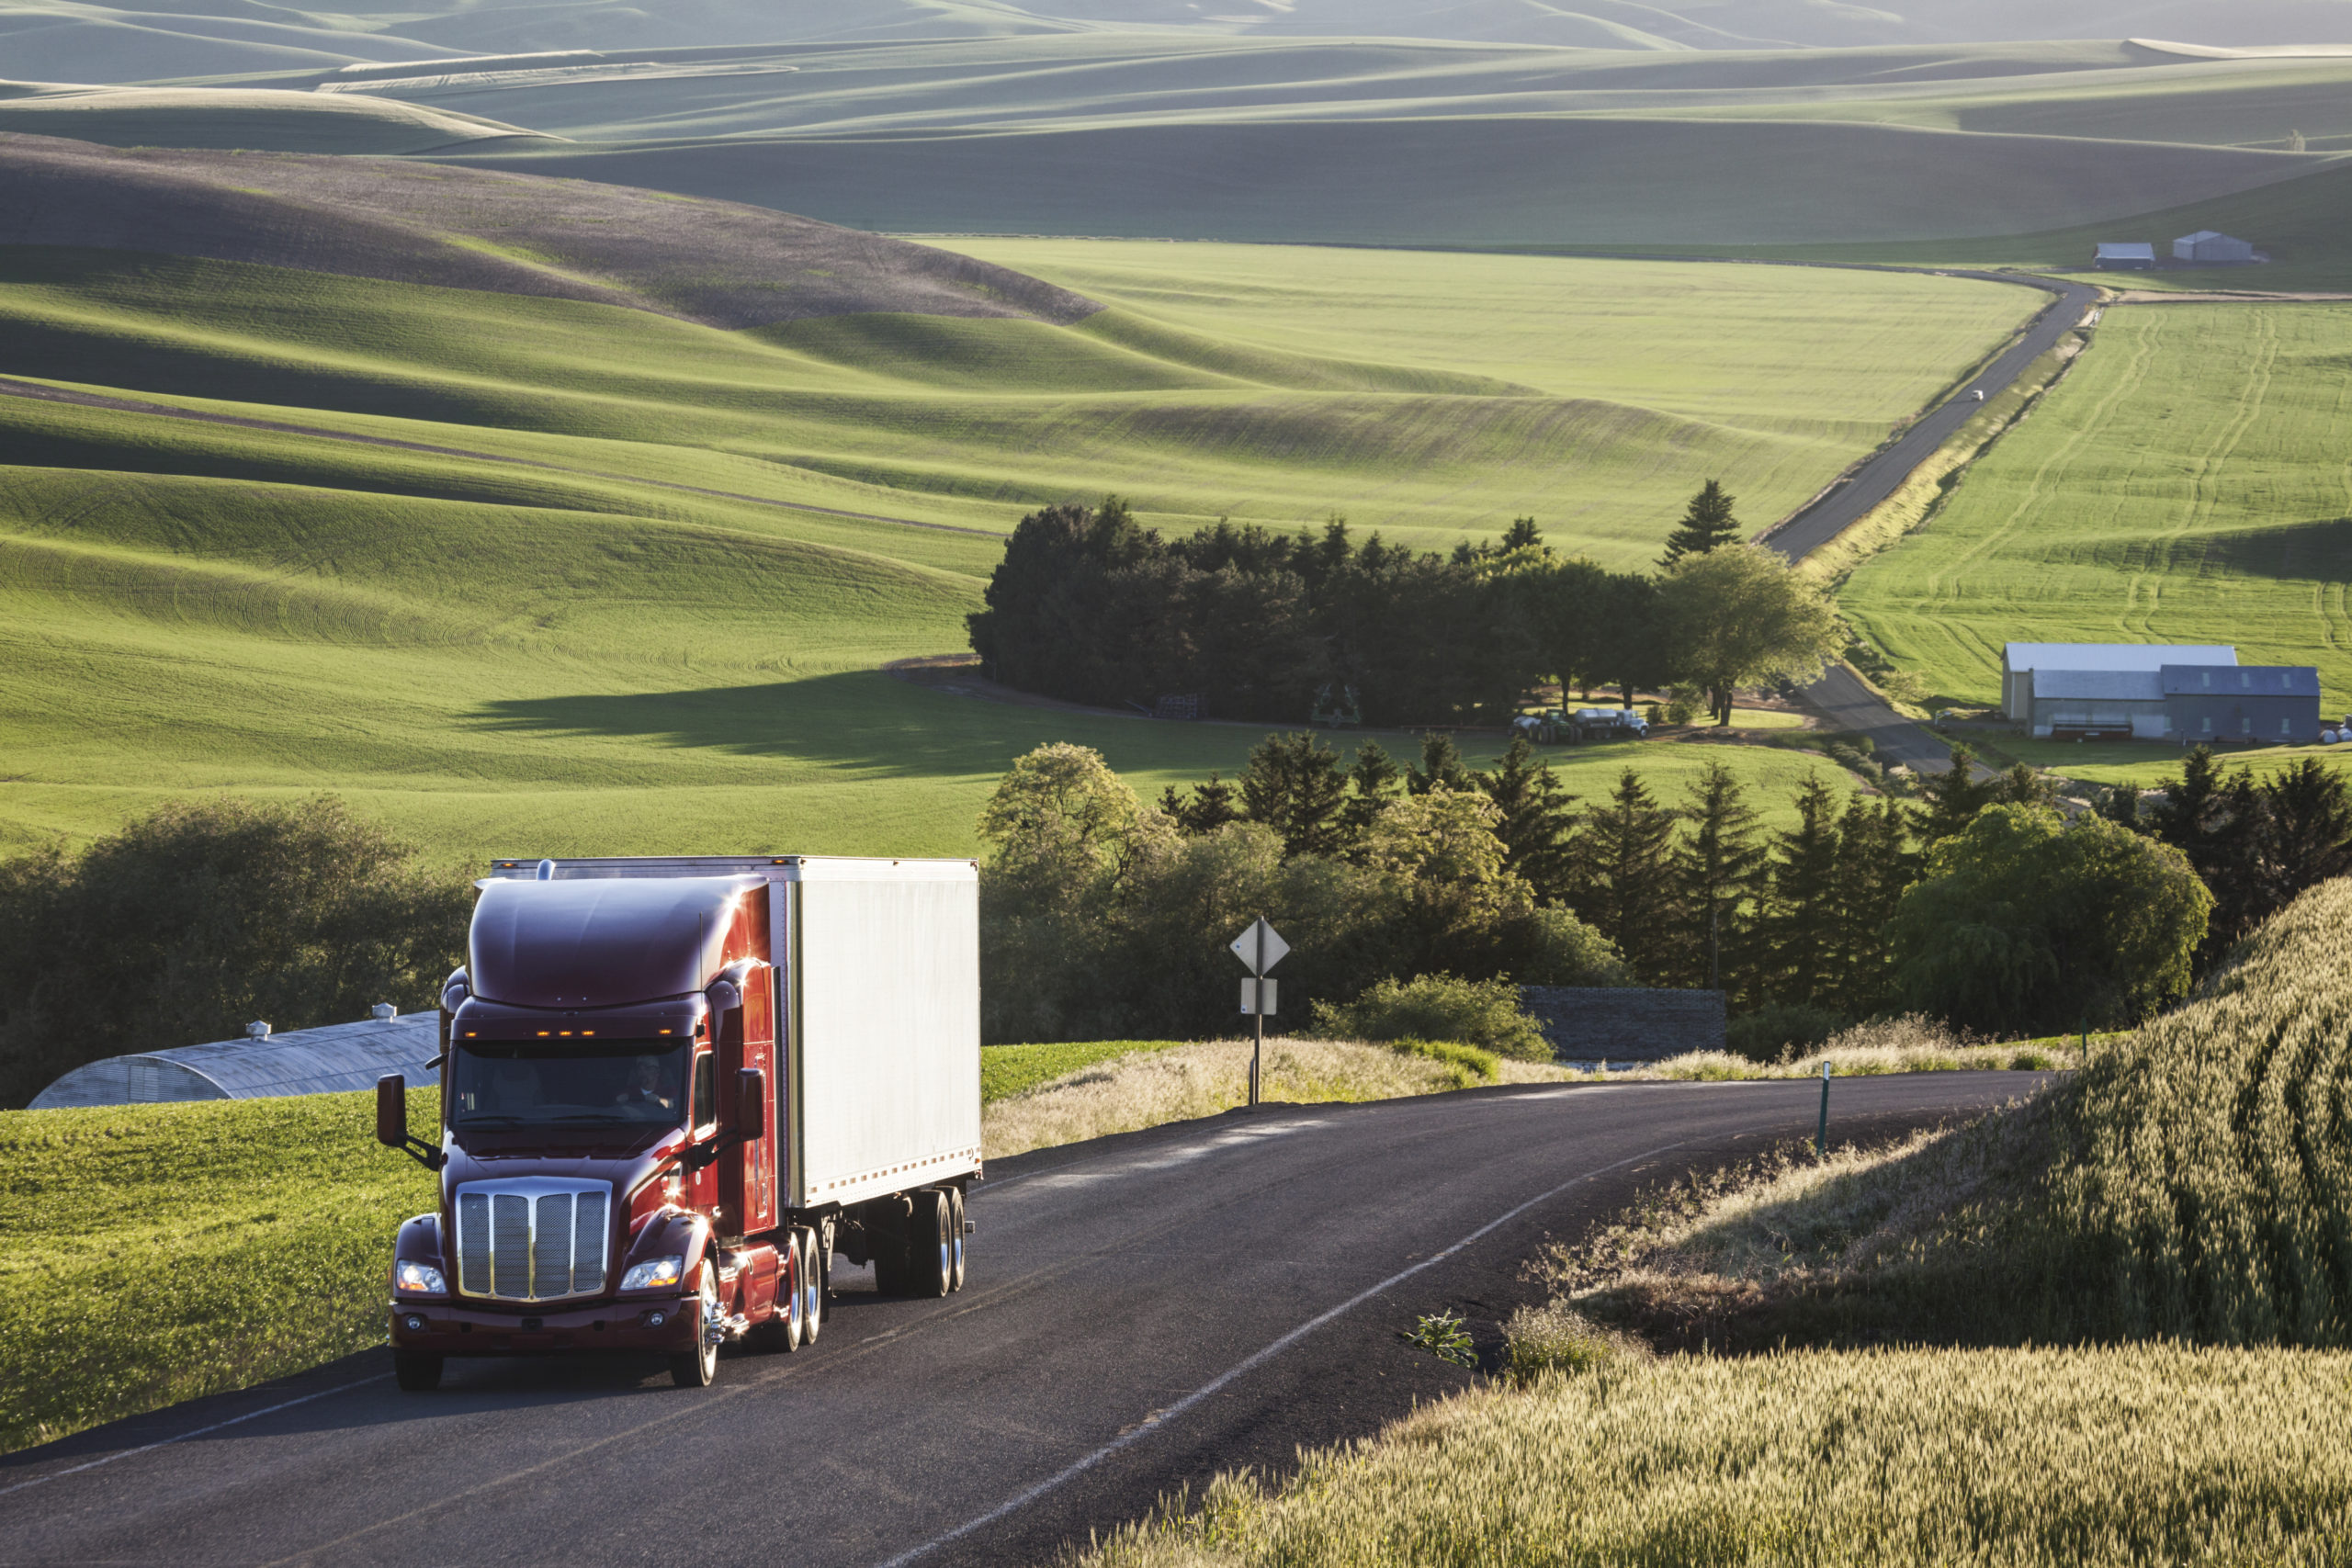 commercial truck driving though wheat fields of ea RSNKYQG scaled